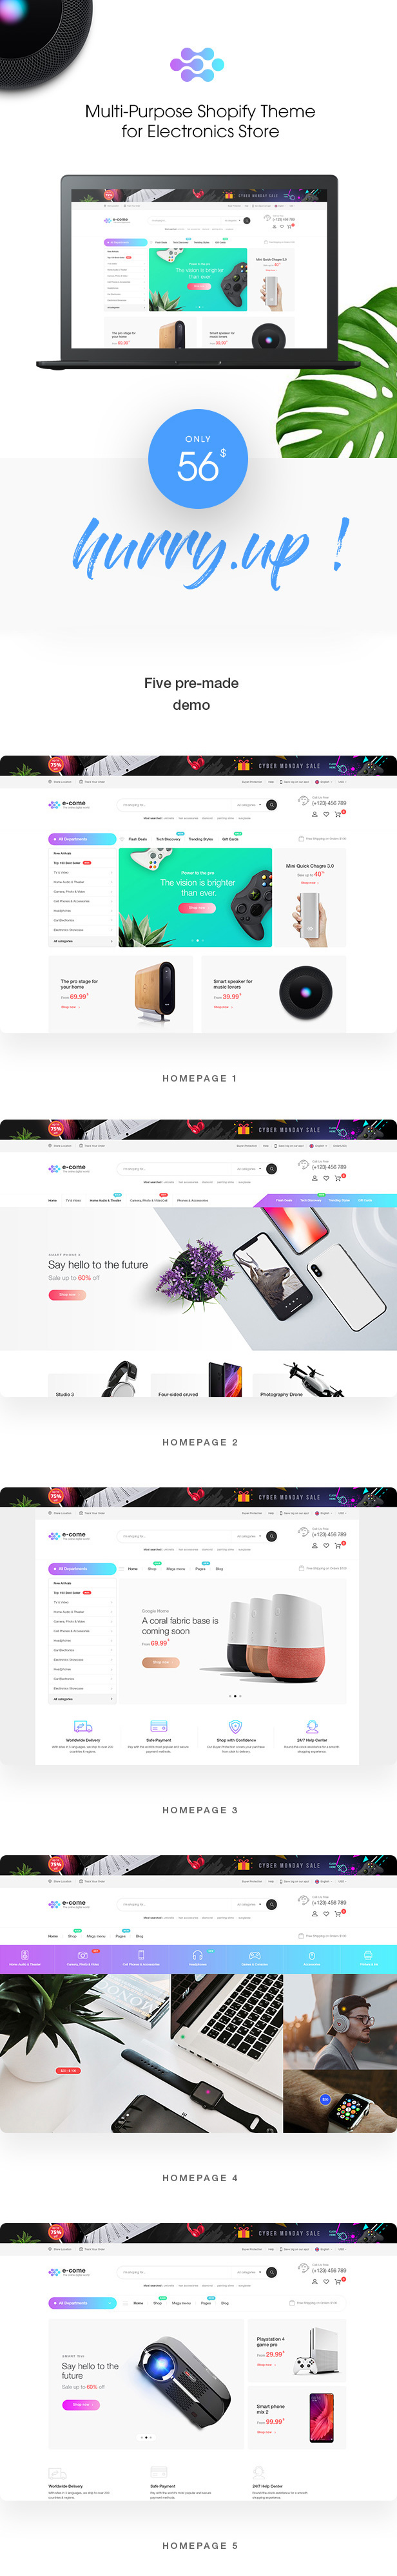 E-come | Multi-Purpose Shopify Theme for Electronics Store